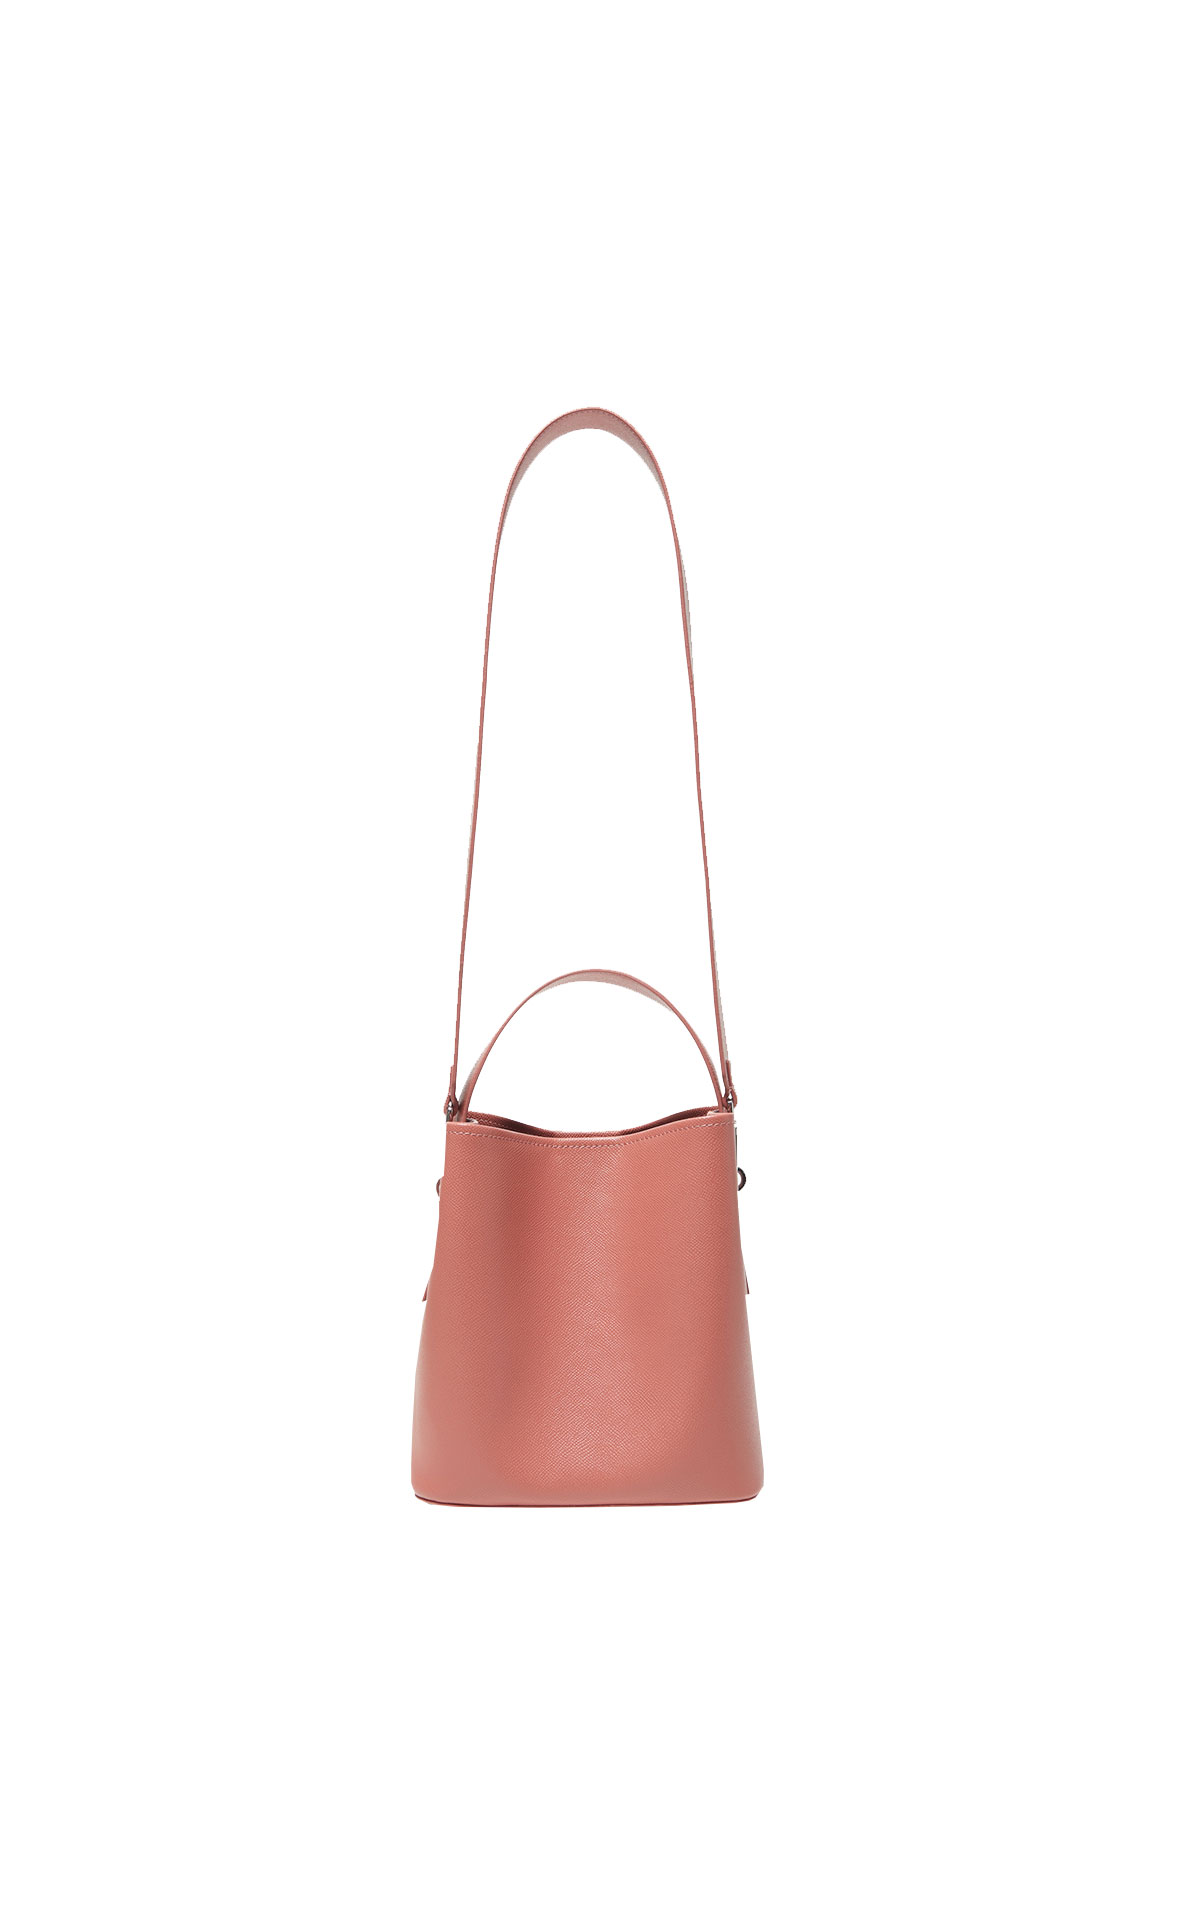 Brown bucket bag Adolfo Dominguez